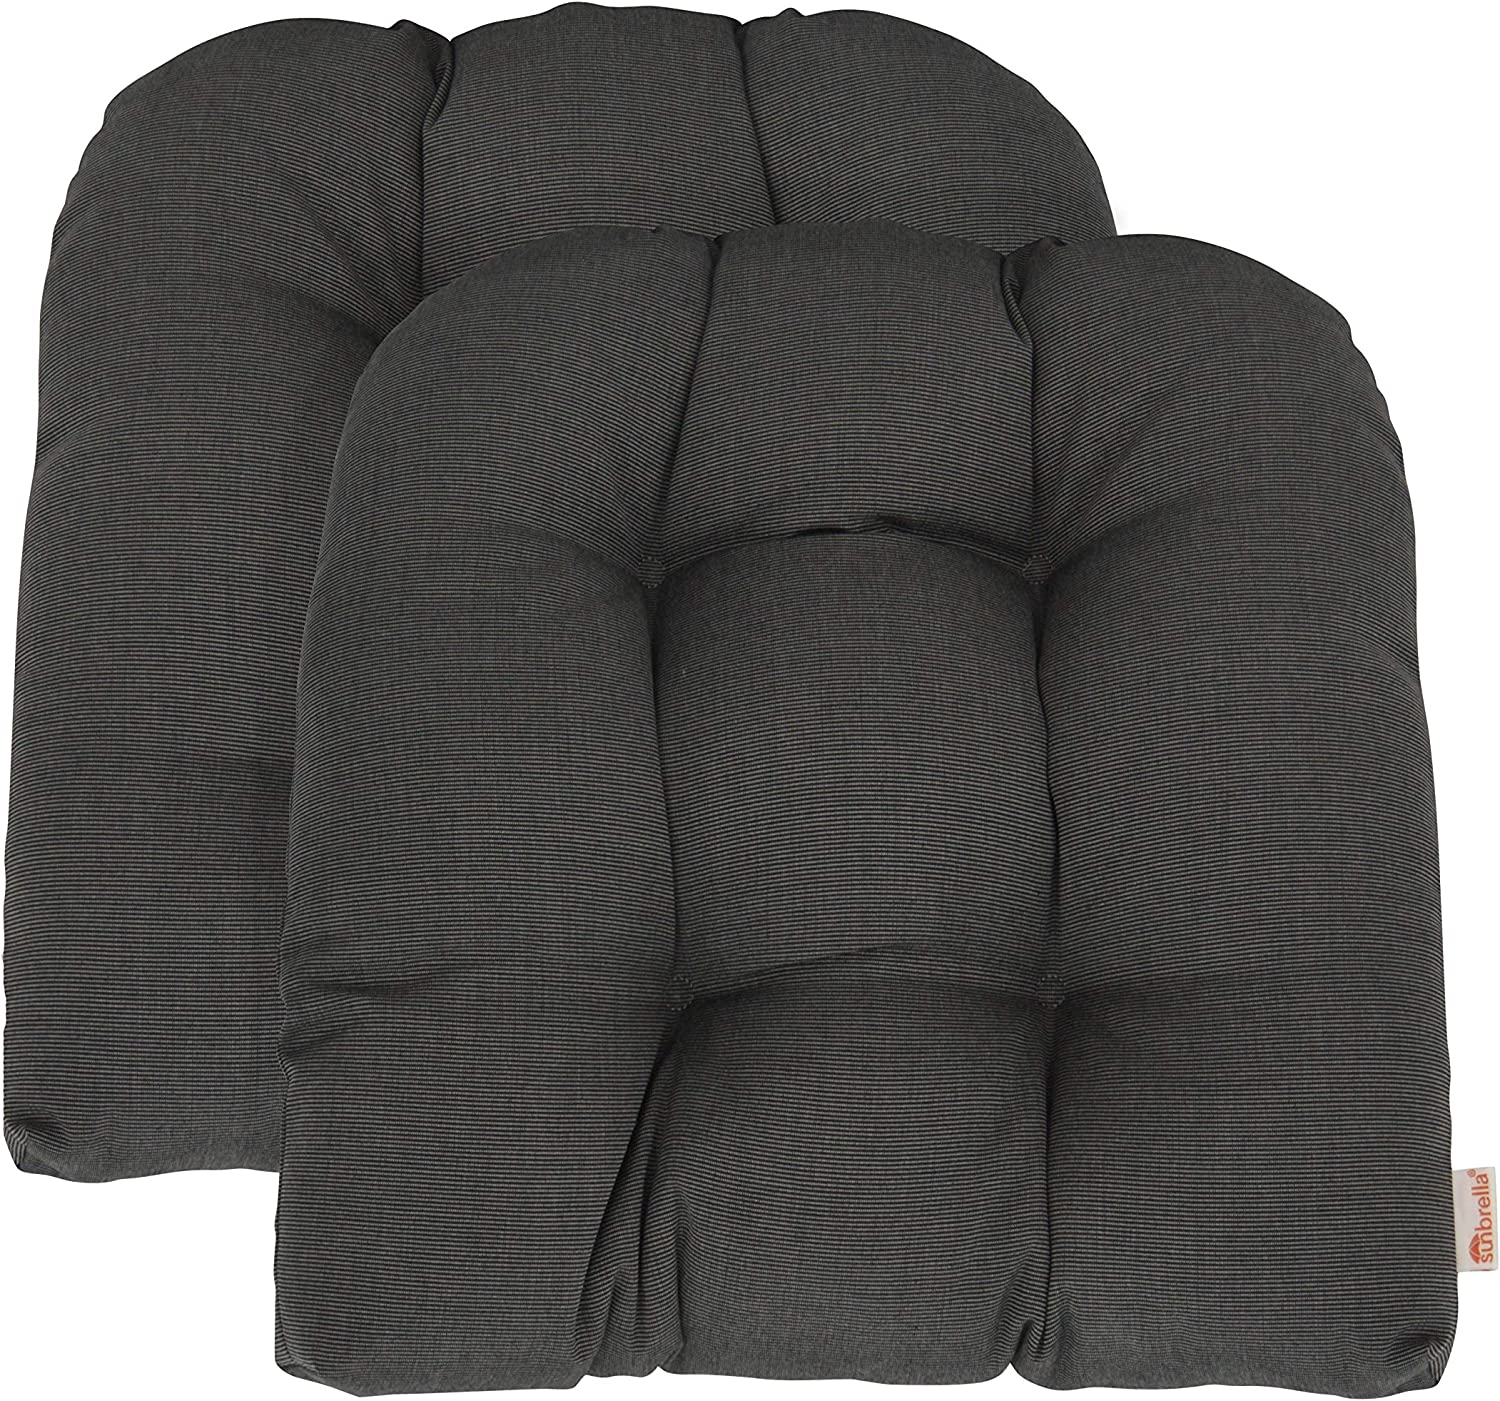 "RSH Décor Indoor ~ Outdoor Sunbrella Canvas Coal Large(21""W x 21""D) Tufted Wicker - 2 U-Shaped Chair Cushions ~ Dark Grey/Gray"